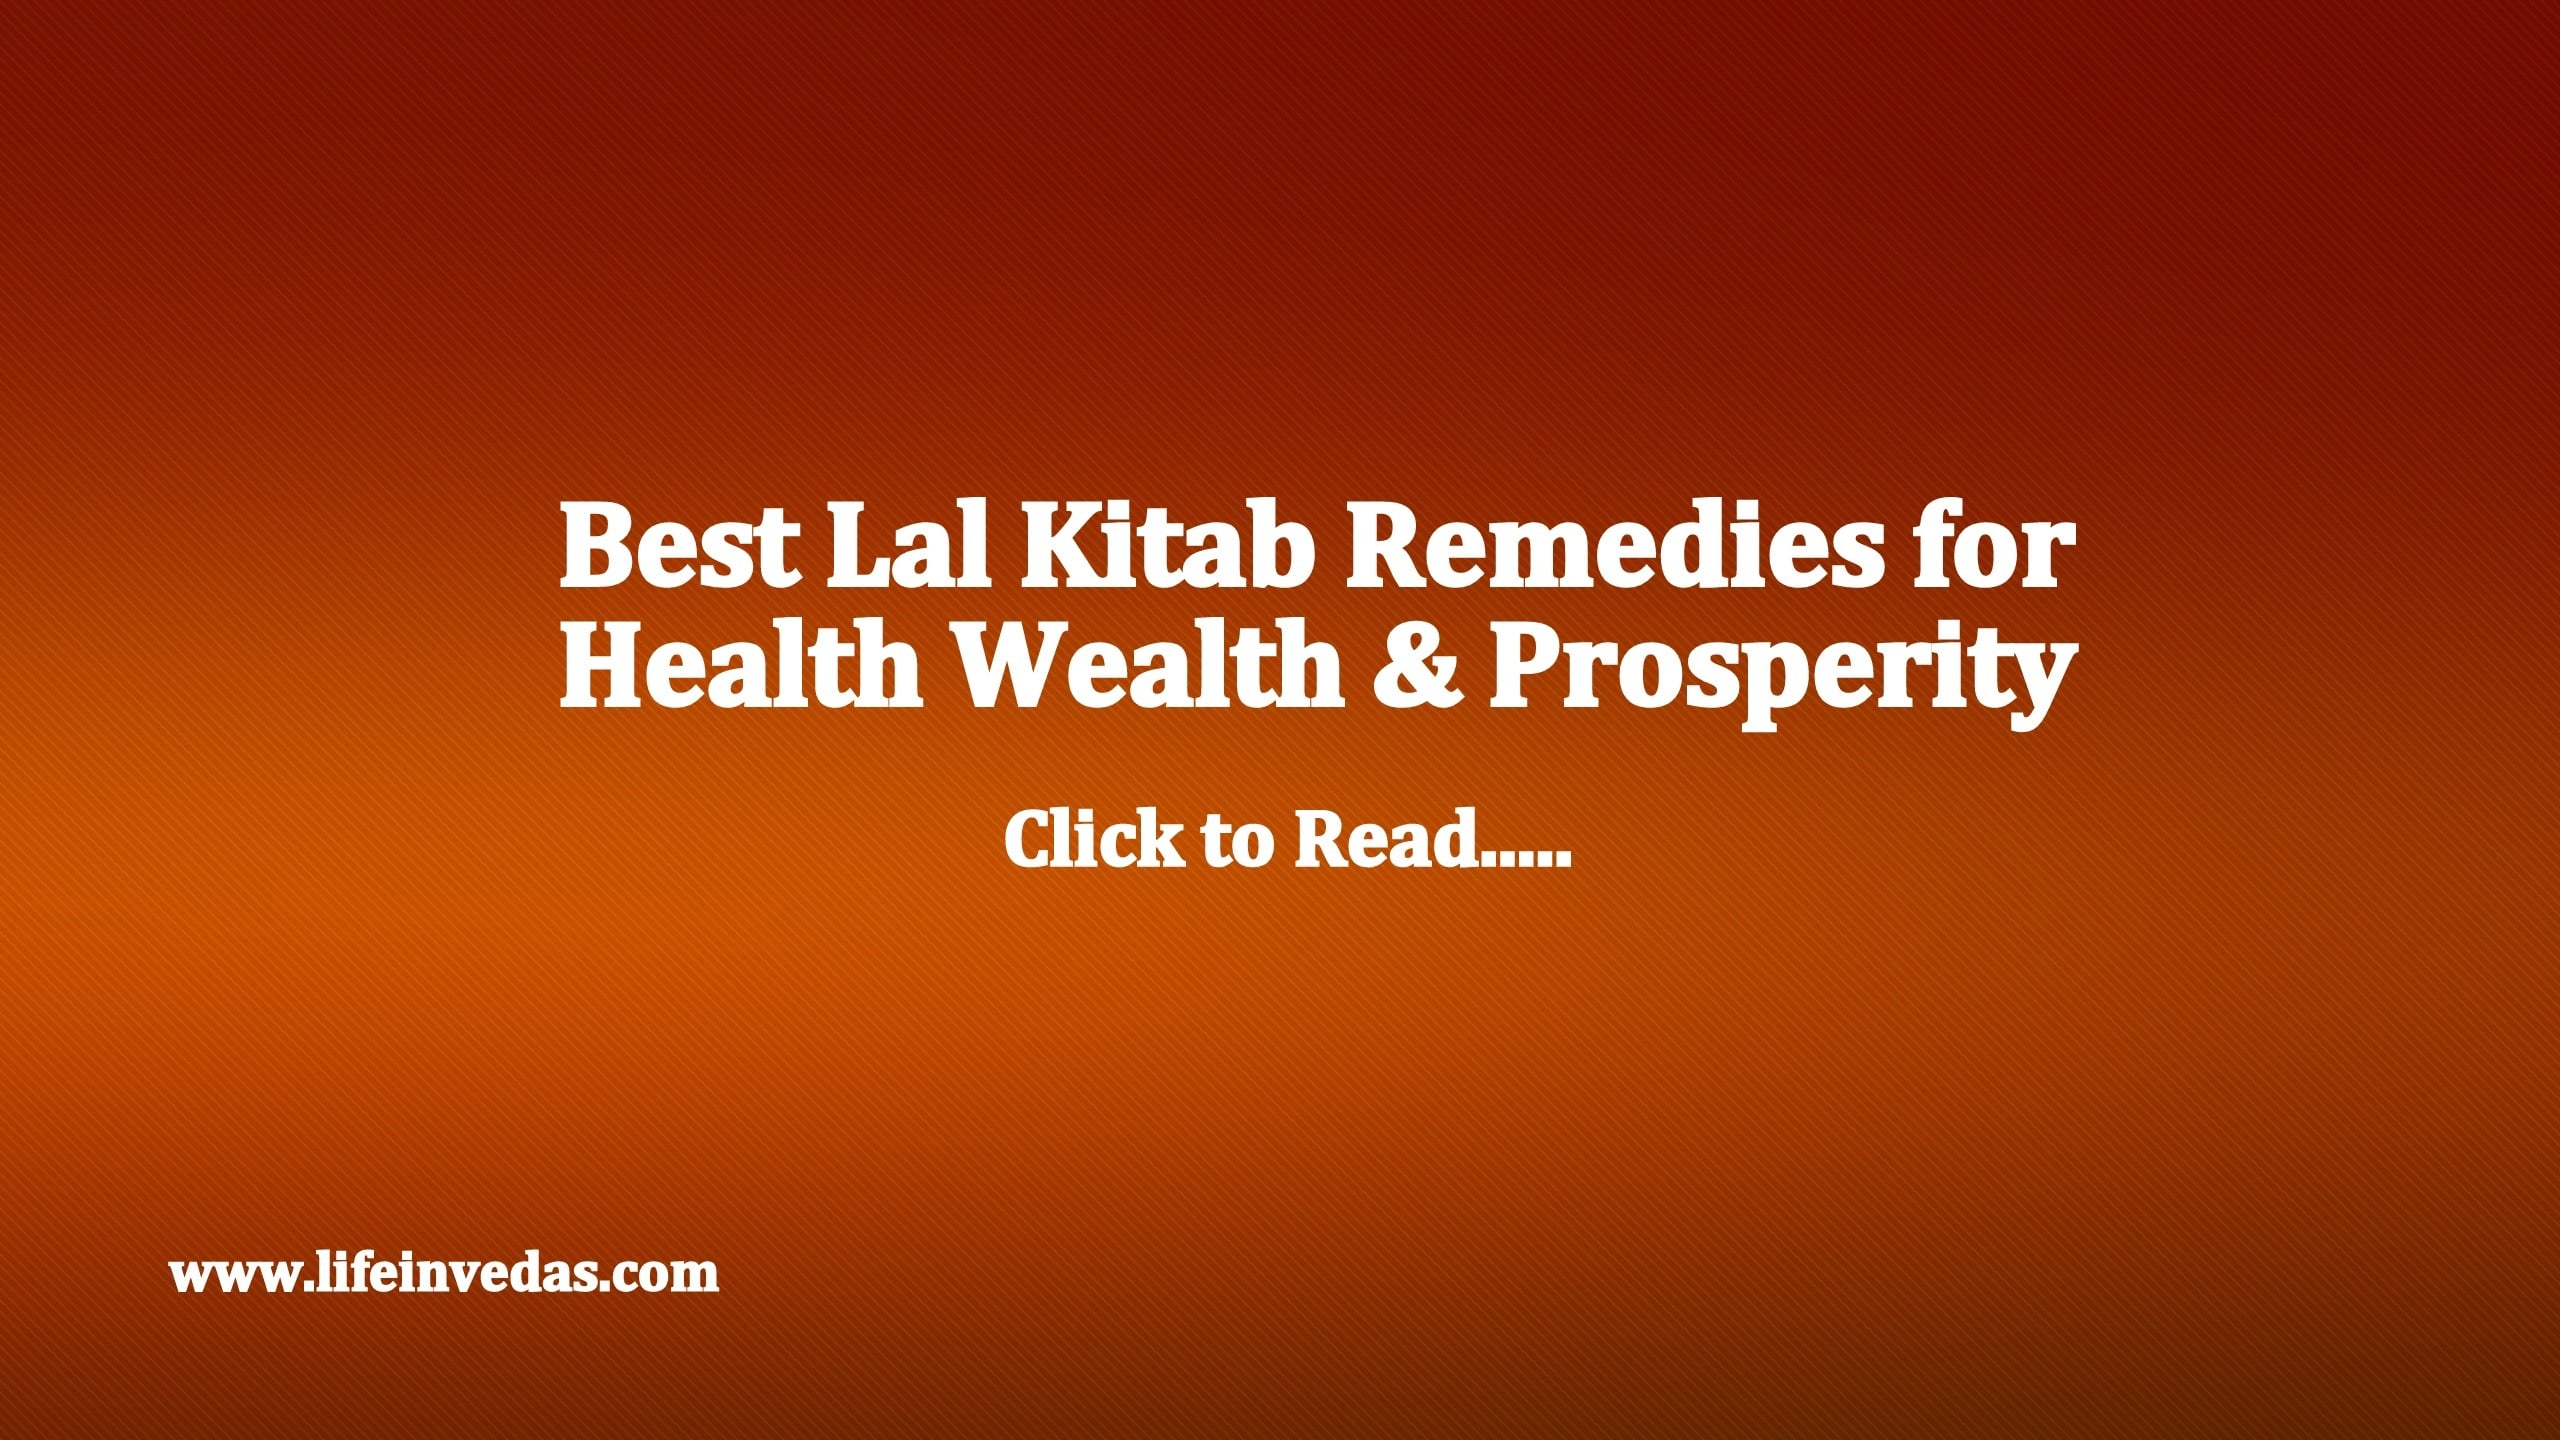 100 Lal Kitab Upay & Remedies for Health, Wealth Money - Life In Vedas